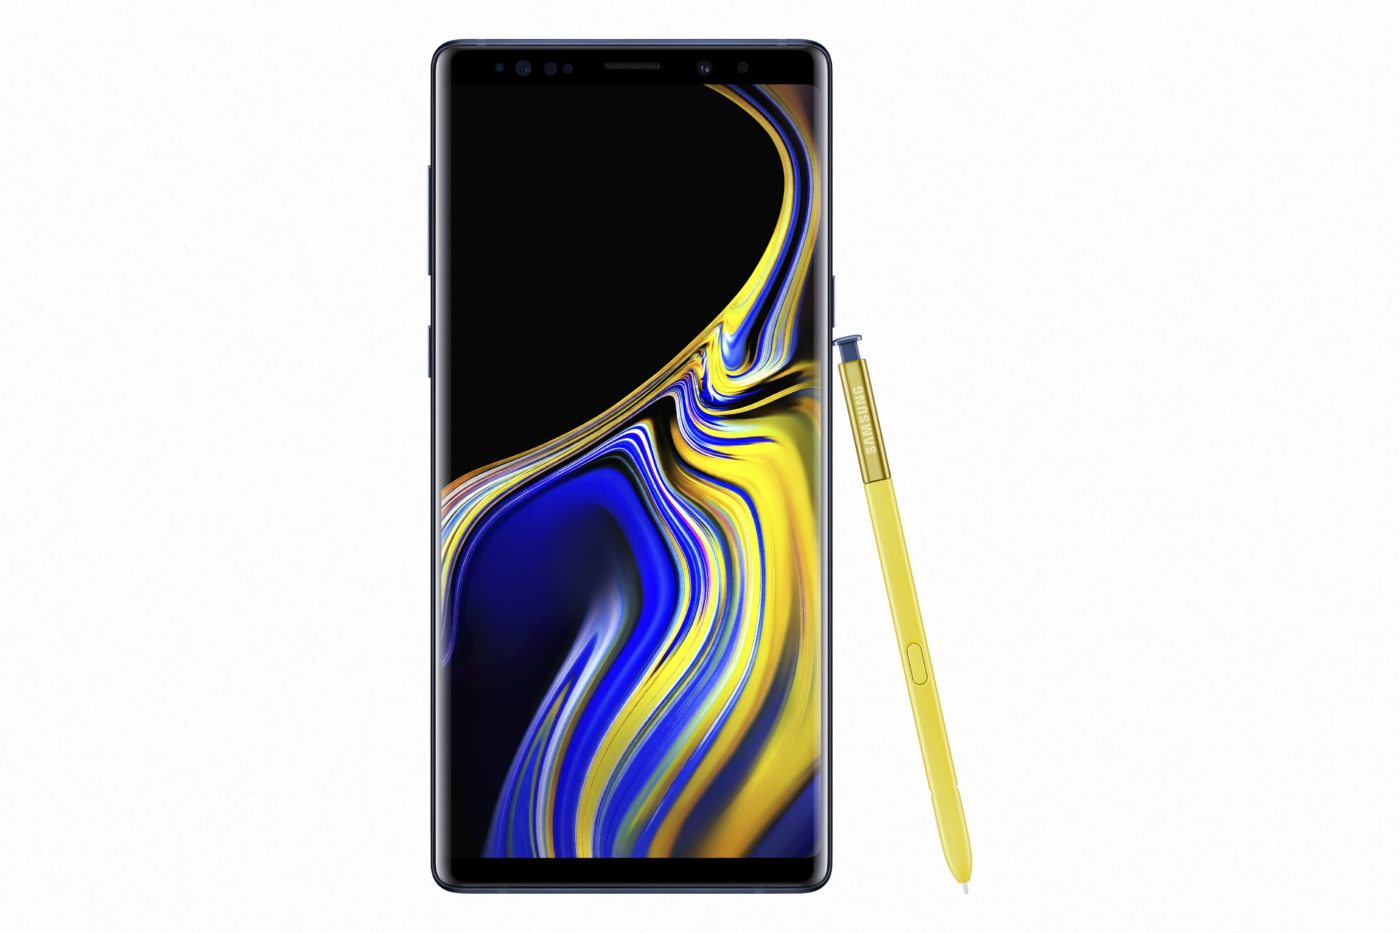 Samsung's Galaxy Note 10 To Feature An Even Larger Killer Display 3